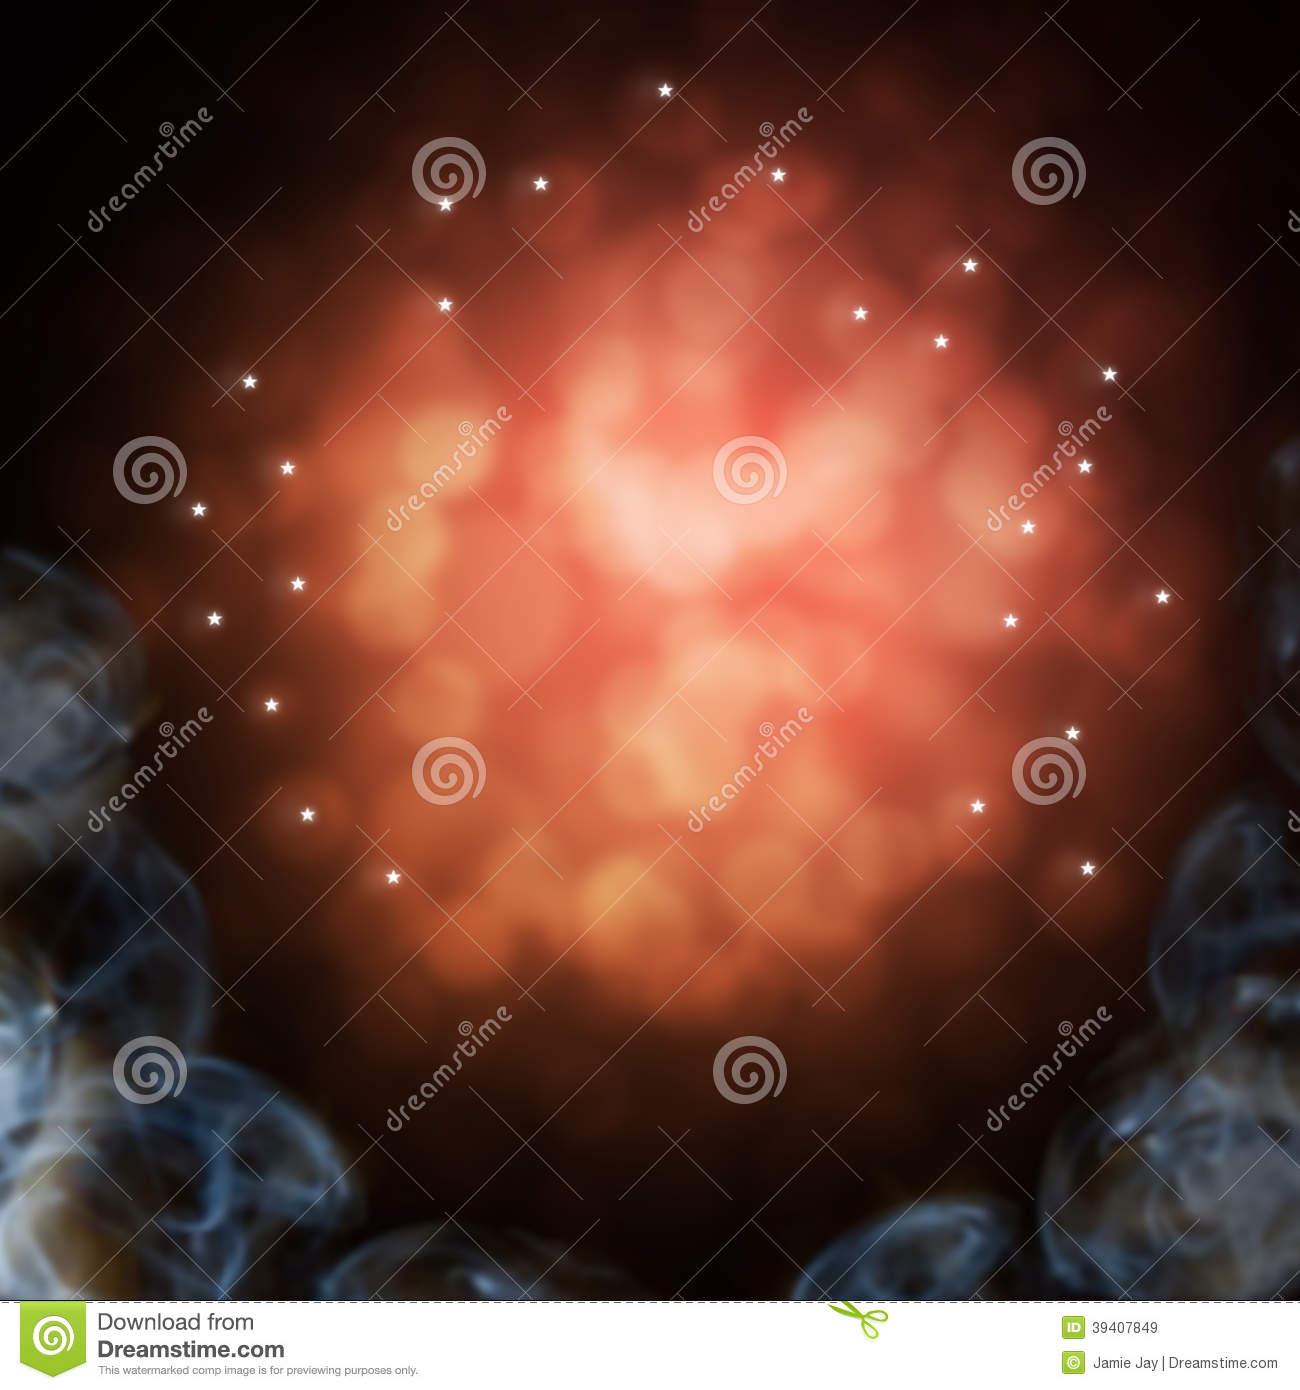 Mystical smokey sparkle background stock illustration for Outer image design